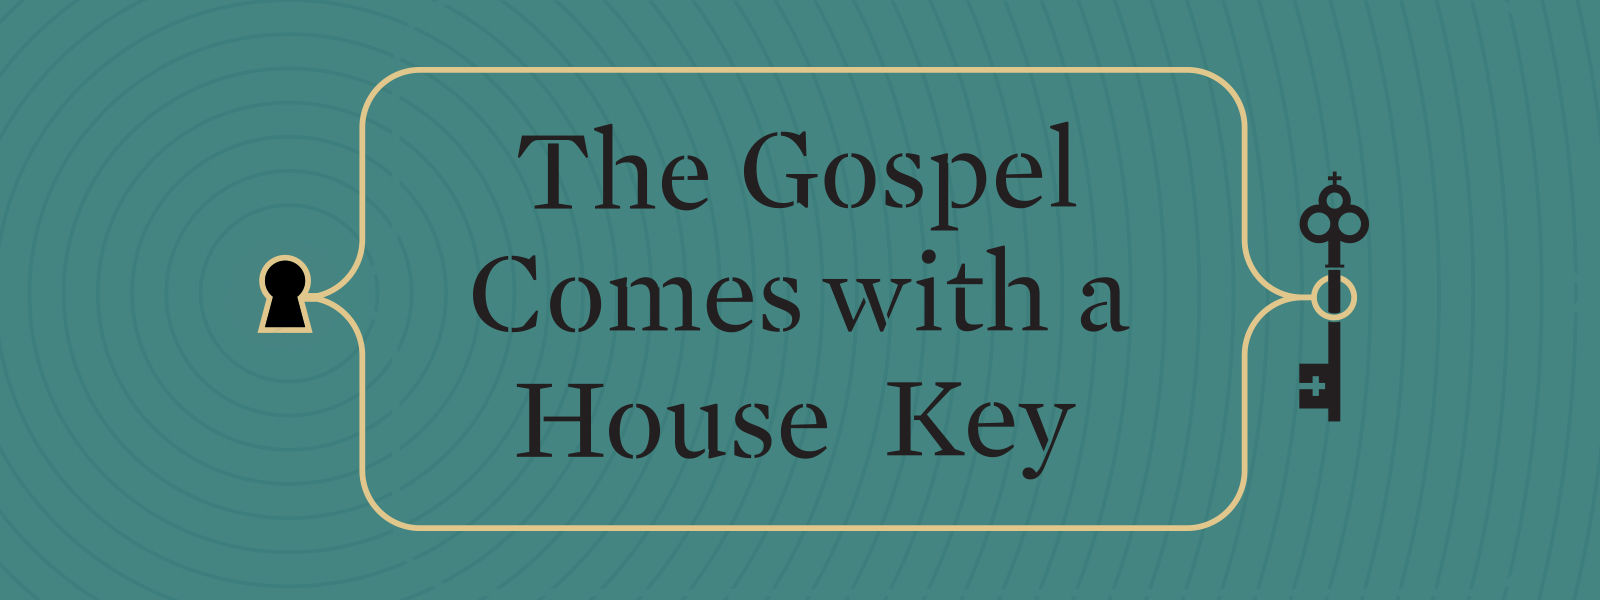 RightNow Media :: Streaming Video Bible Study : The Gospel Comes